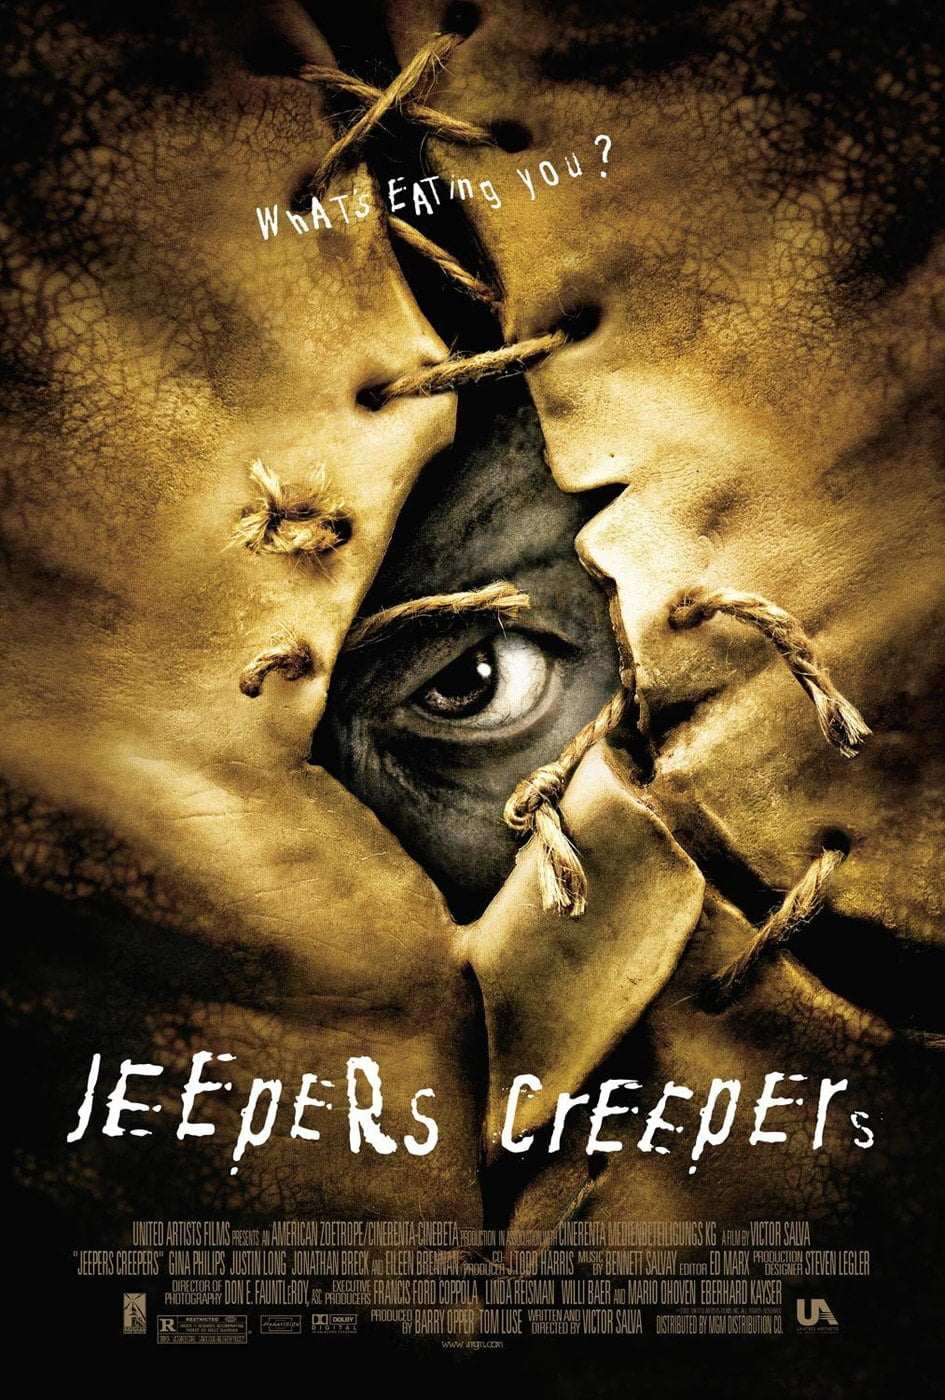 jeepers creepers Victor Salva